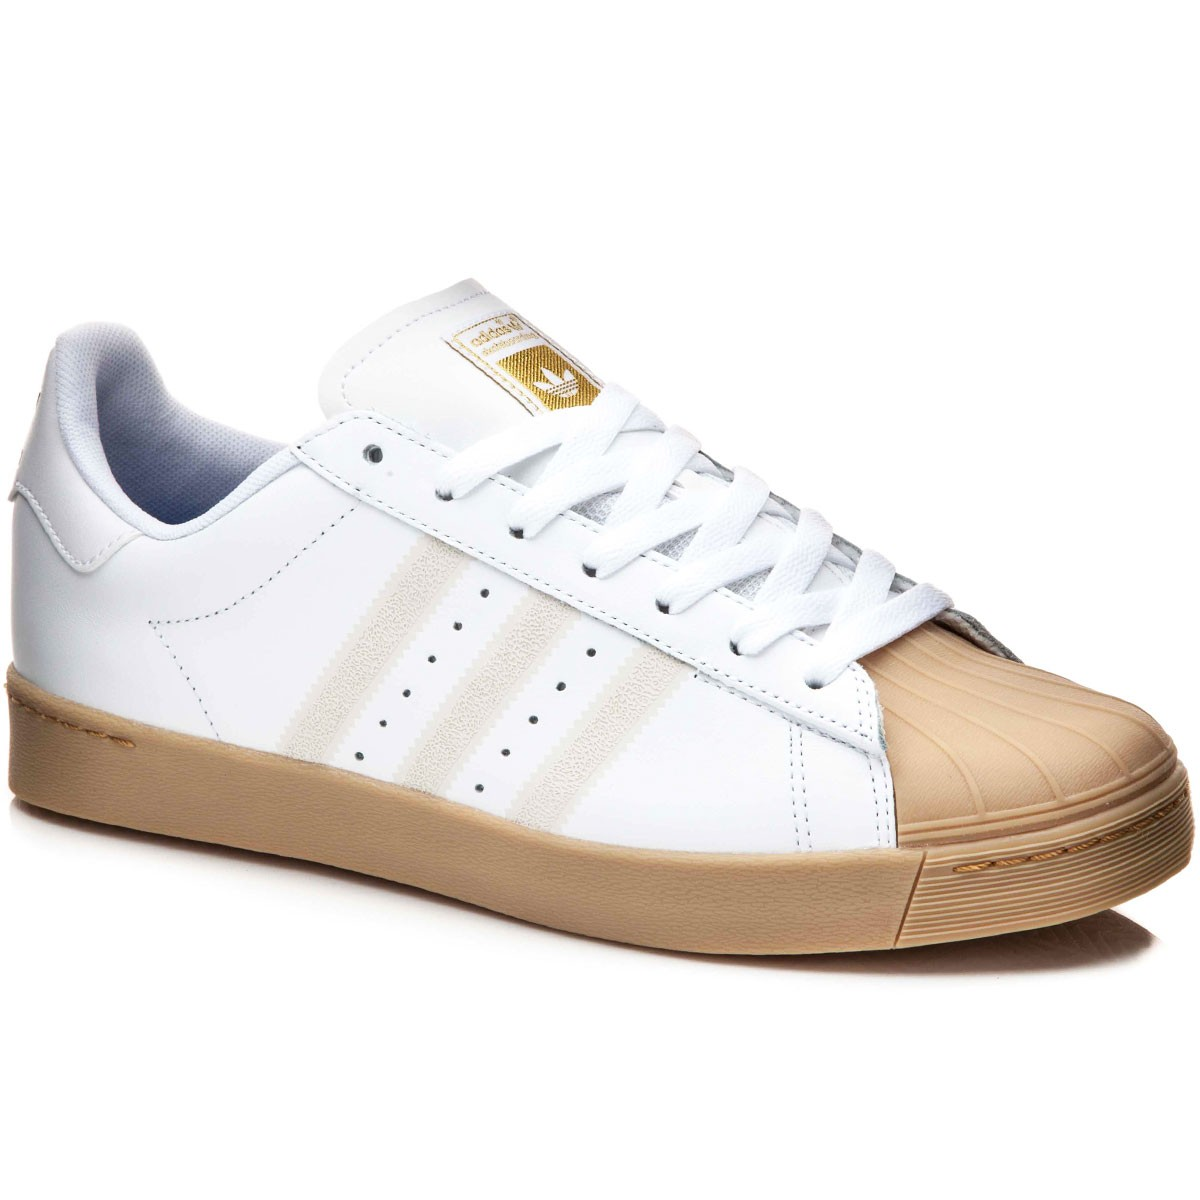 adidas Superstar Vulc ADV (White/Collegiate Royal/Gold